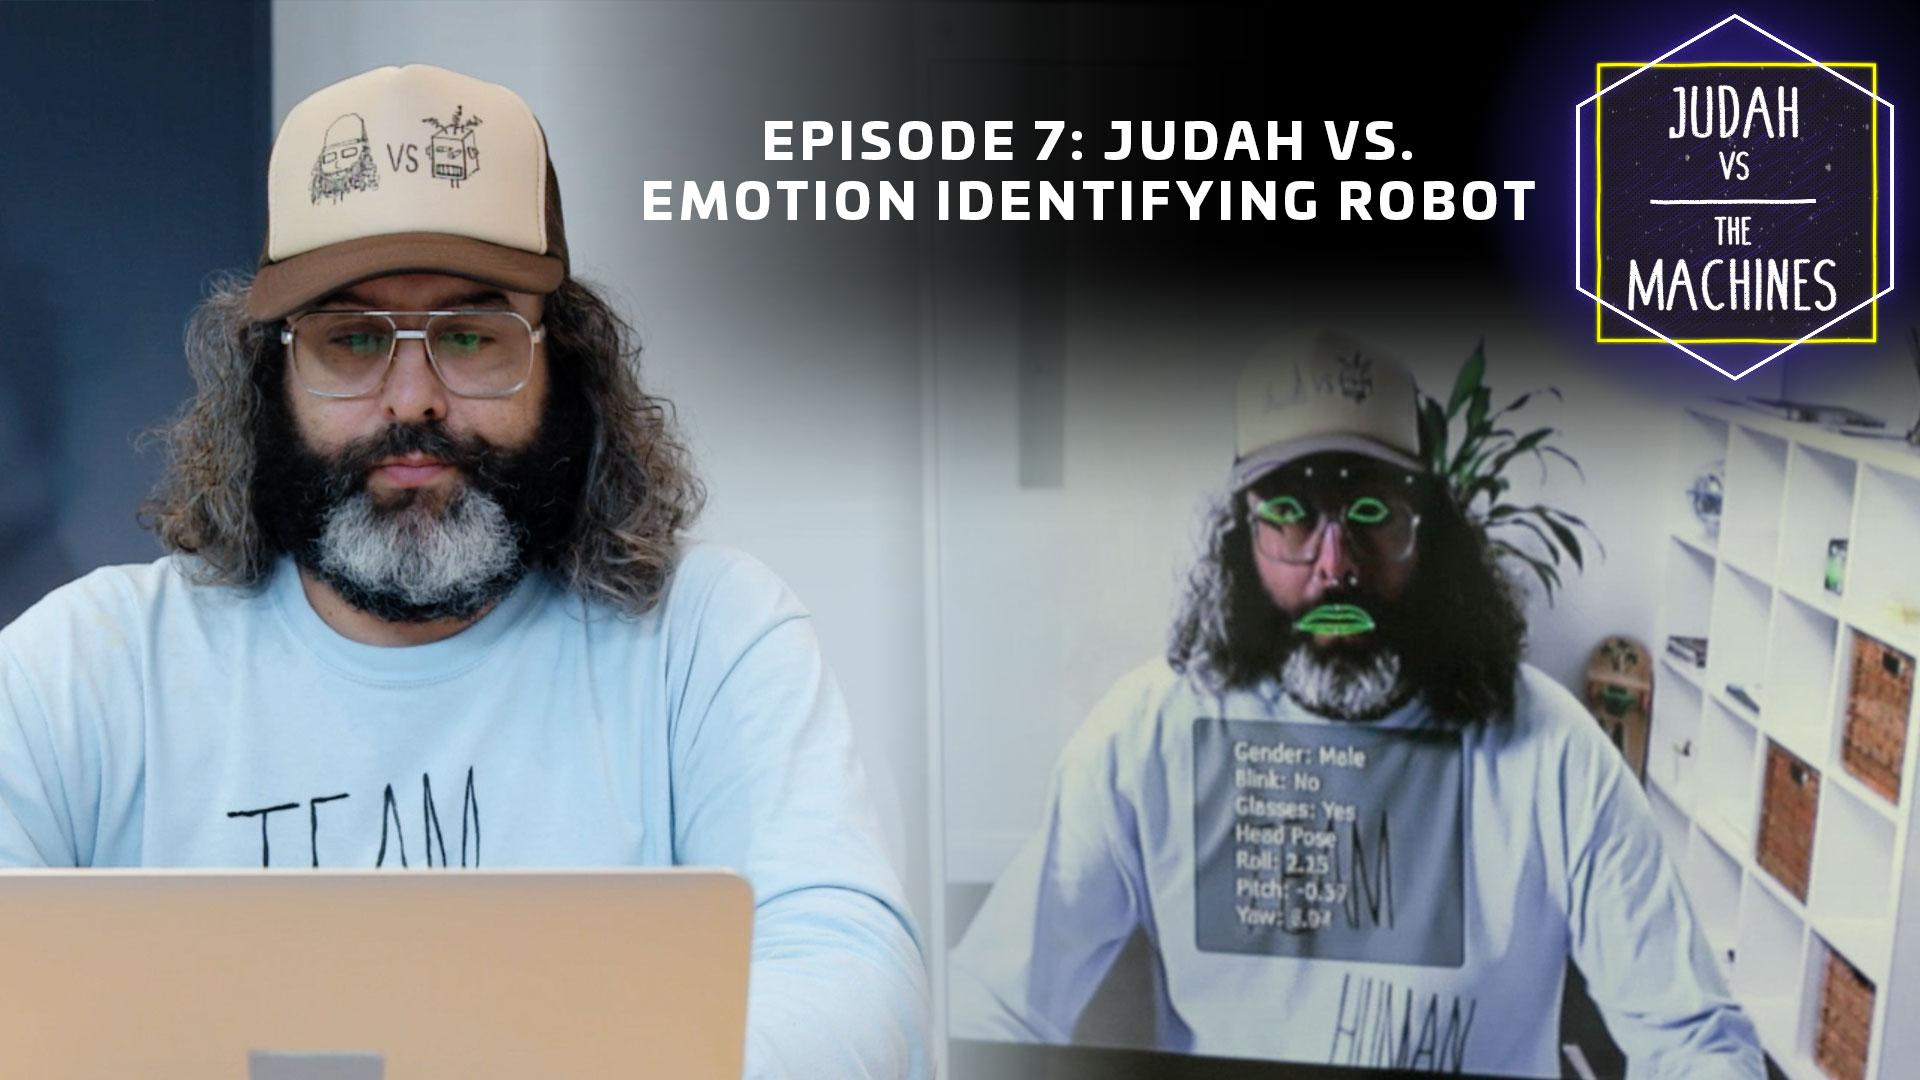 Judah vs emotion identifying robot